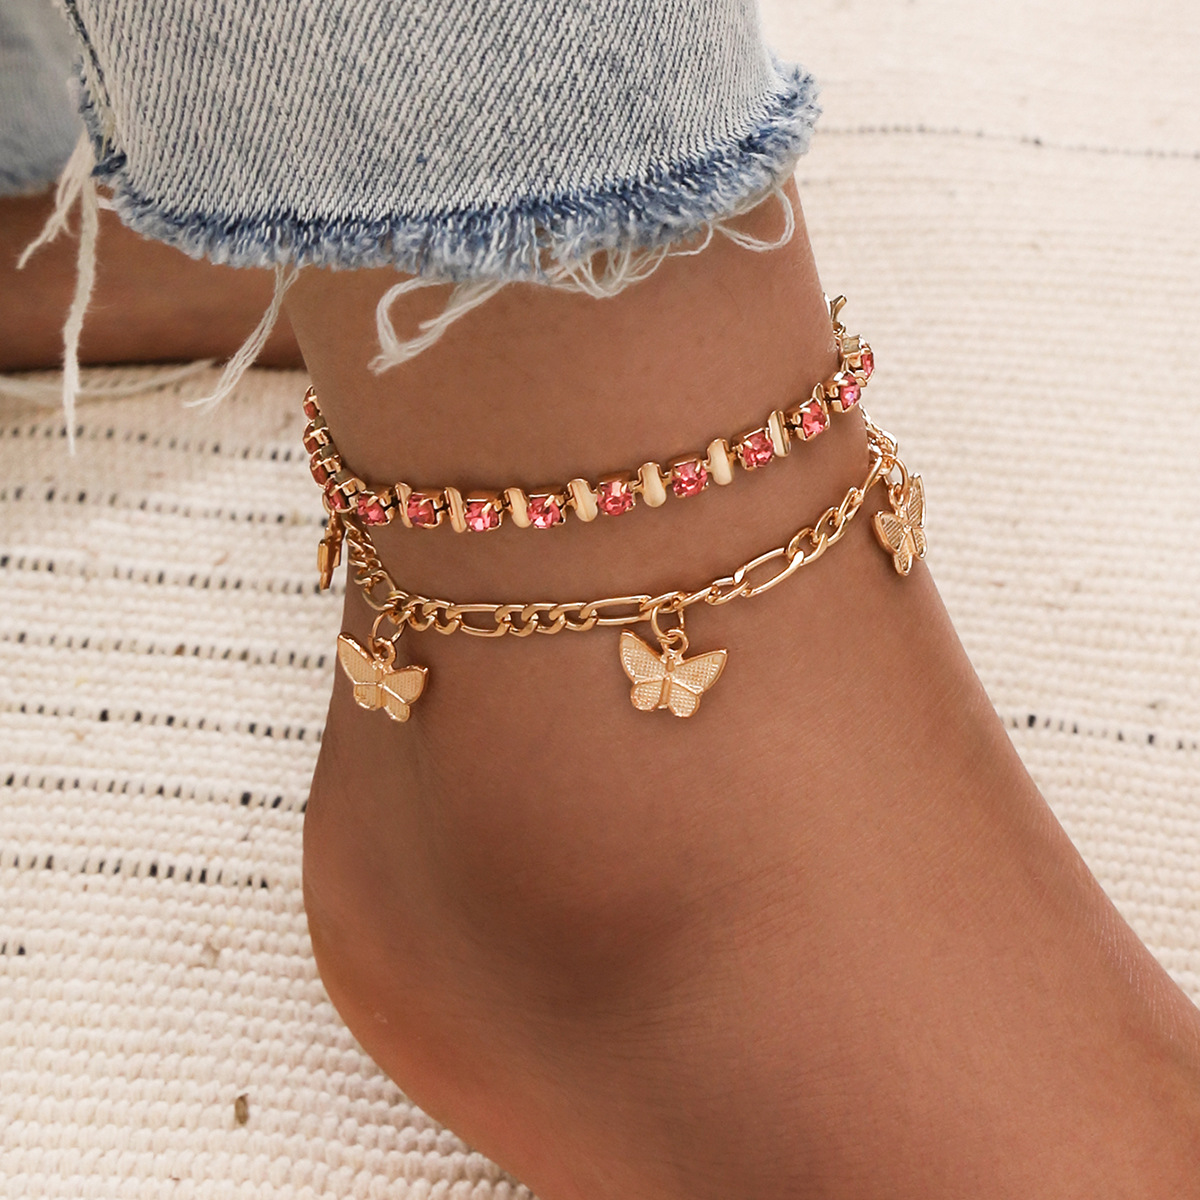 Meetvii Fashion Cute Butterfly Anklets for Women Pink Crystal CZ Gold Color Chain Ankle Bracelet 2020 Bohemian Foot Jewelry